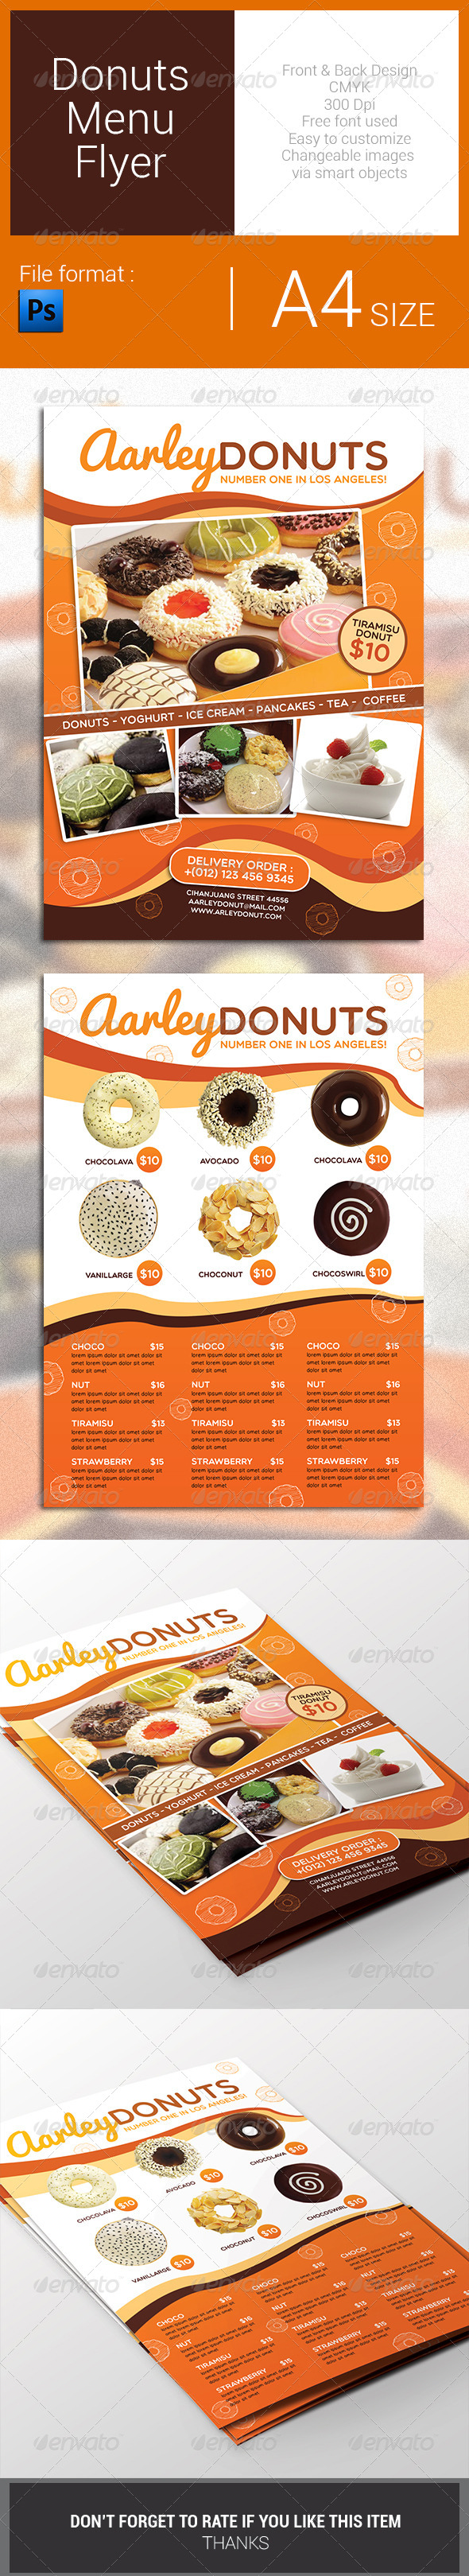 GraphicRiver Donuts Menu Flyer 7823541